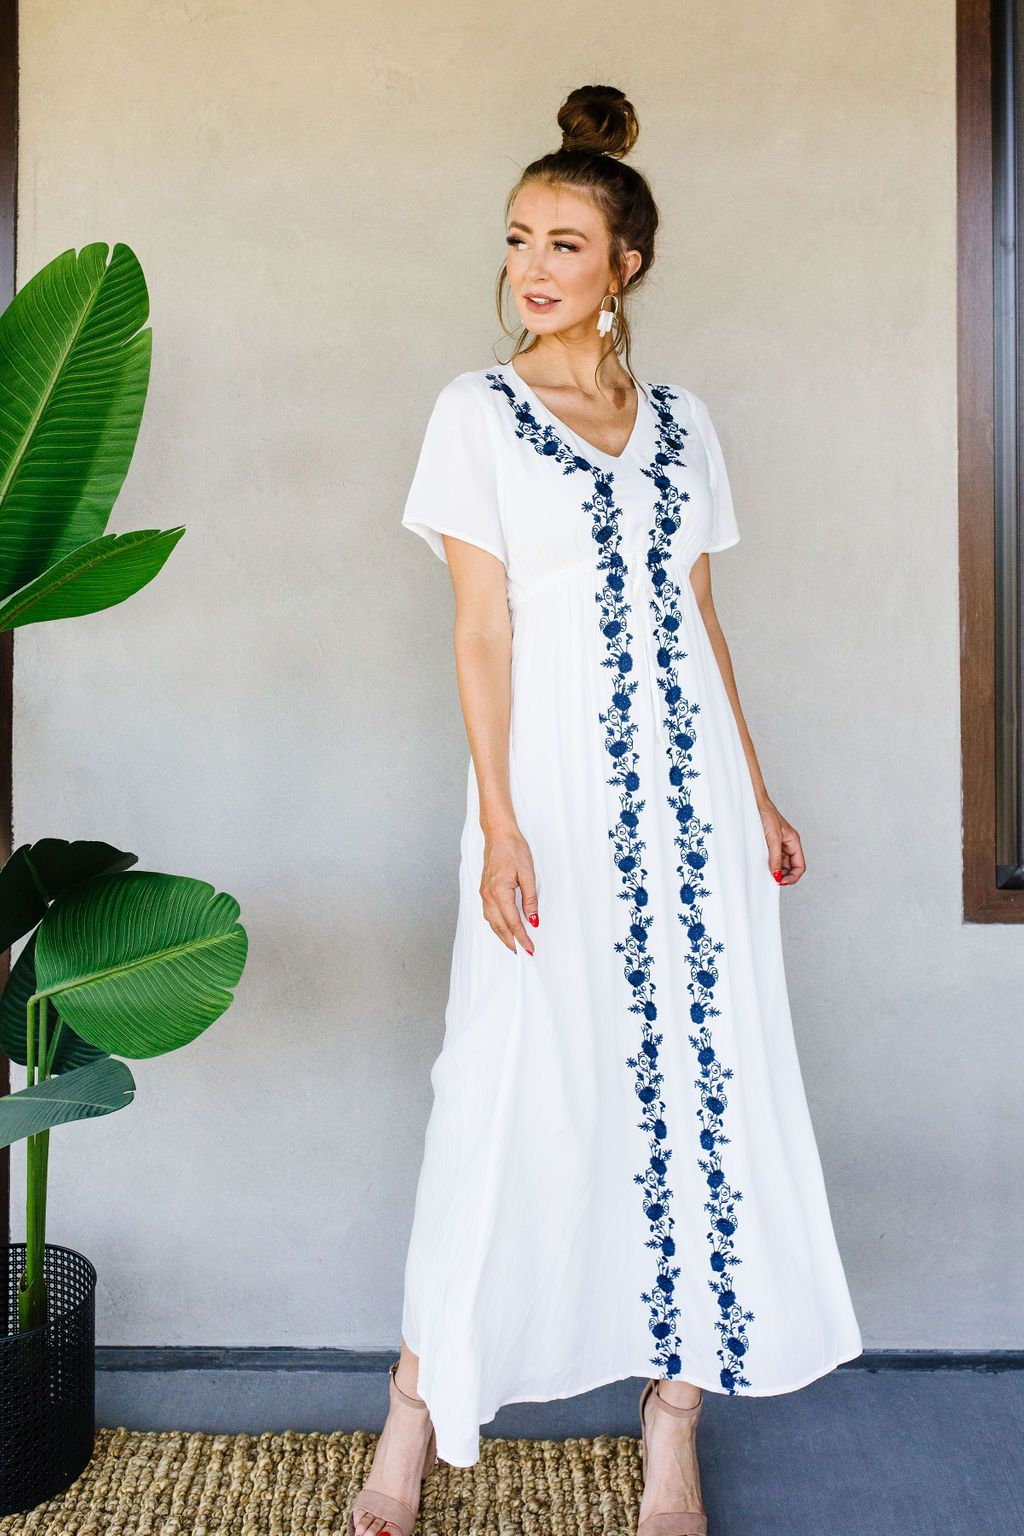 Blue Roses Embroidered Dress